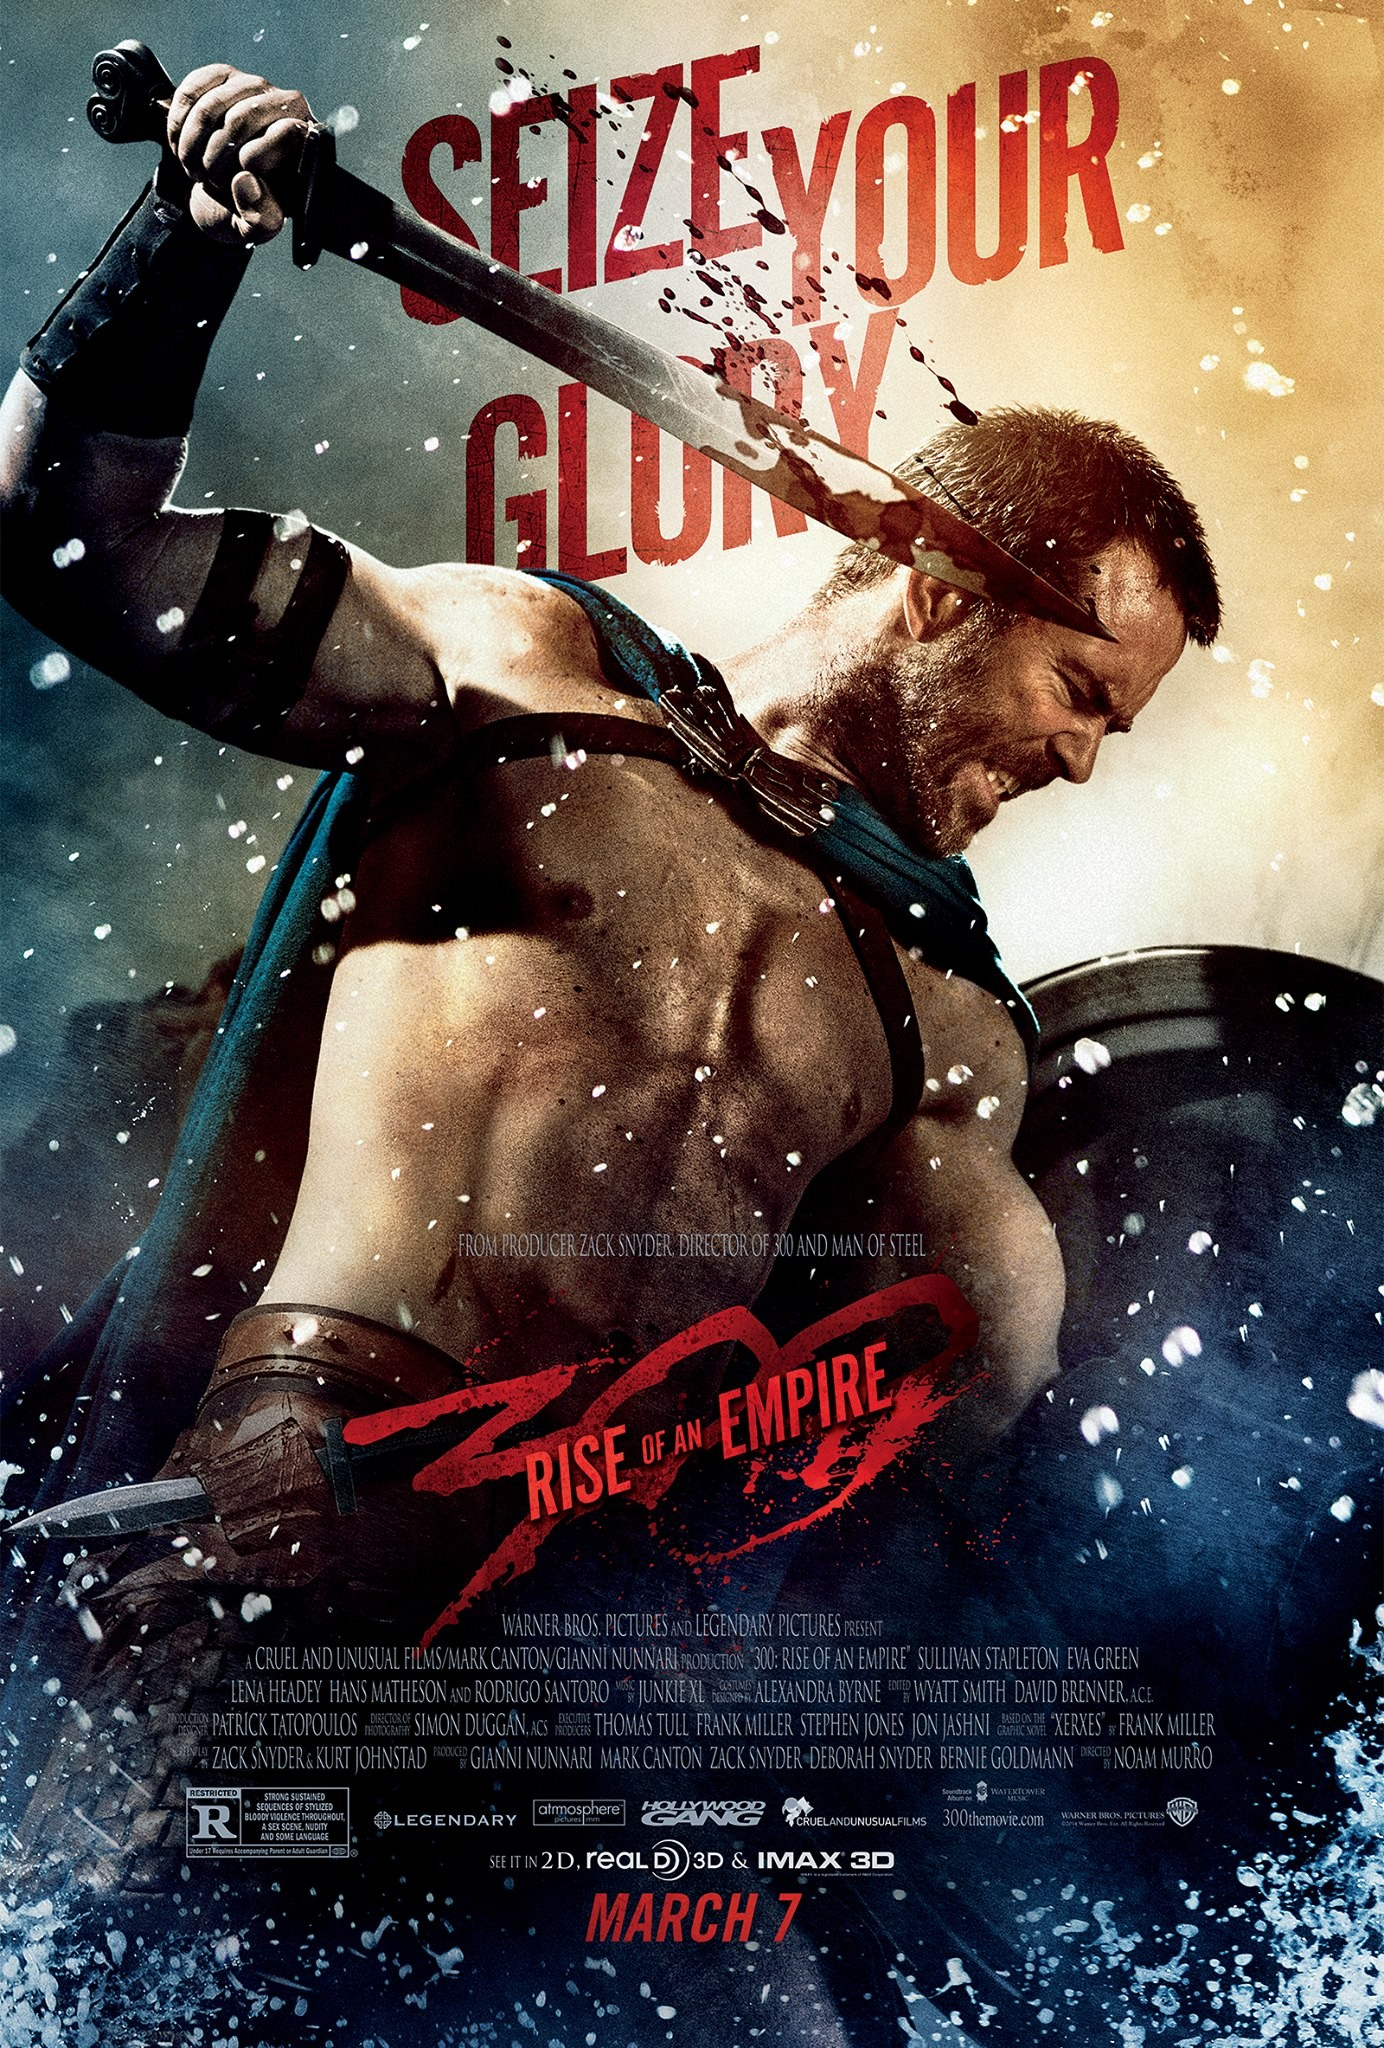 300 Rise of an Empire-Official Poster Banner PROMO CHAR XXLG-20JANEIRO2014-02